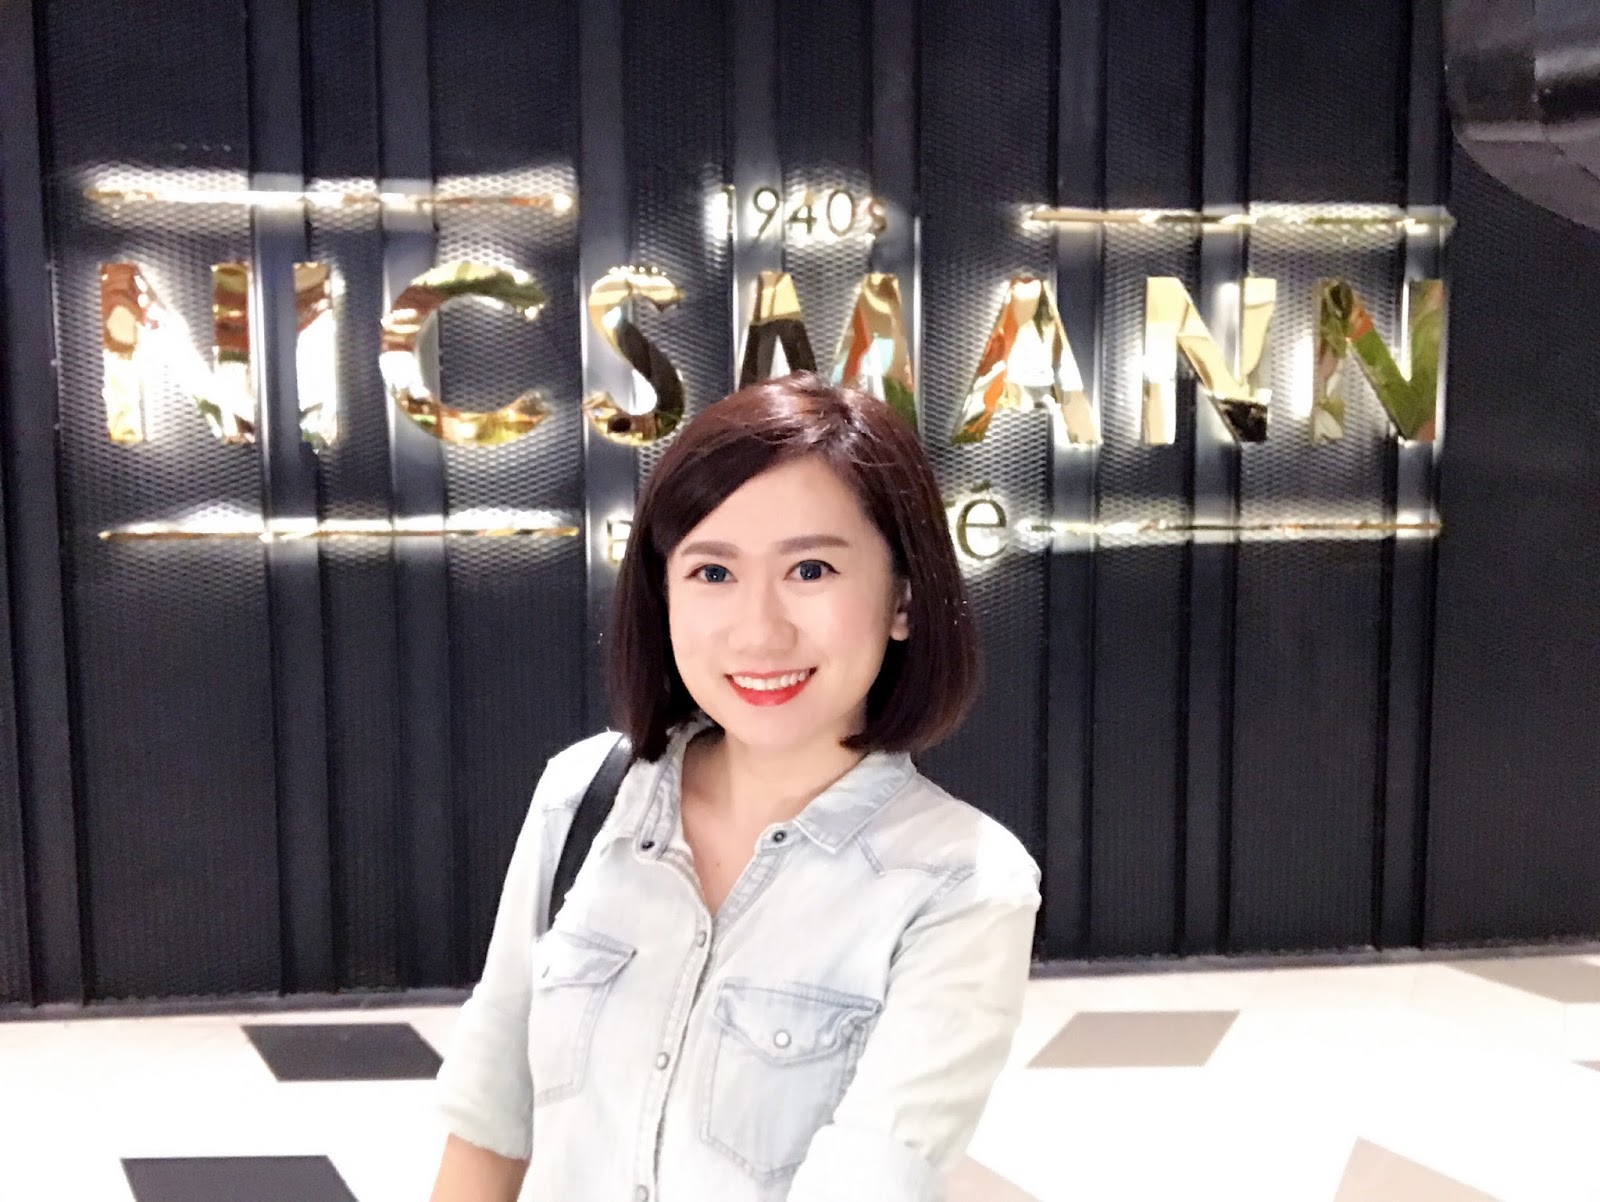 [Food Review] Nicsmann 1940s By Lewré @ The Starling Mall